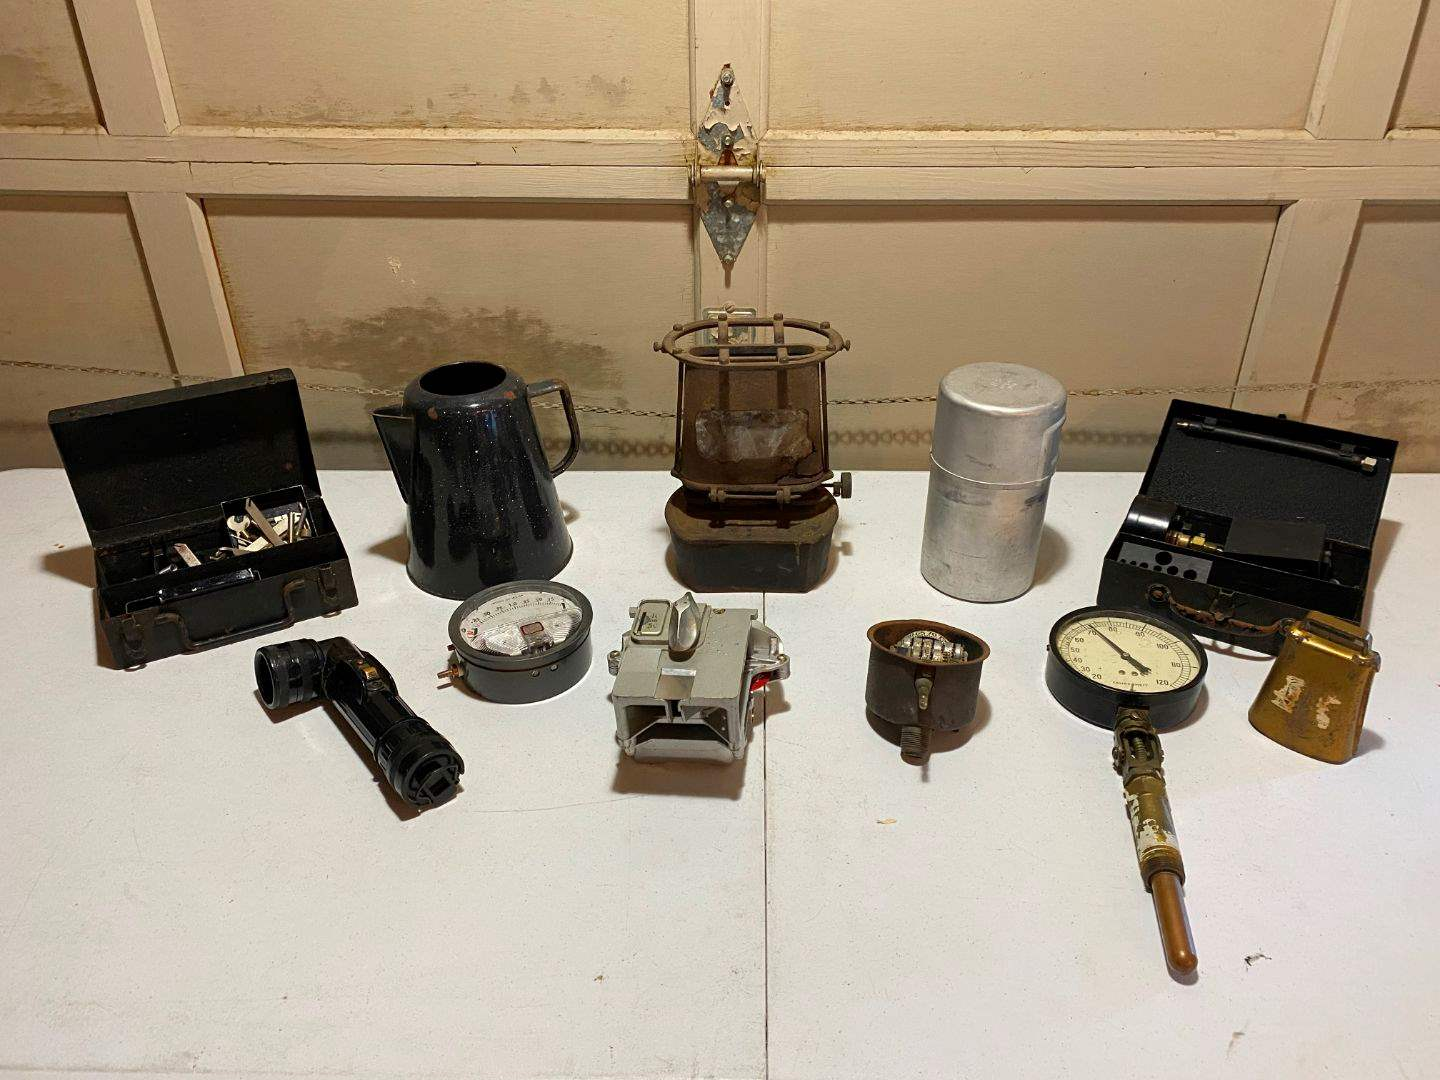 Lot # 212 - Antique Iron Clad Lamp Stove, Vintage Parking Meter, Misc Gauges, Military Flashlight & More. (main image)